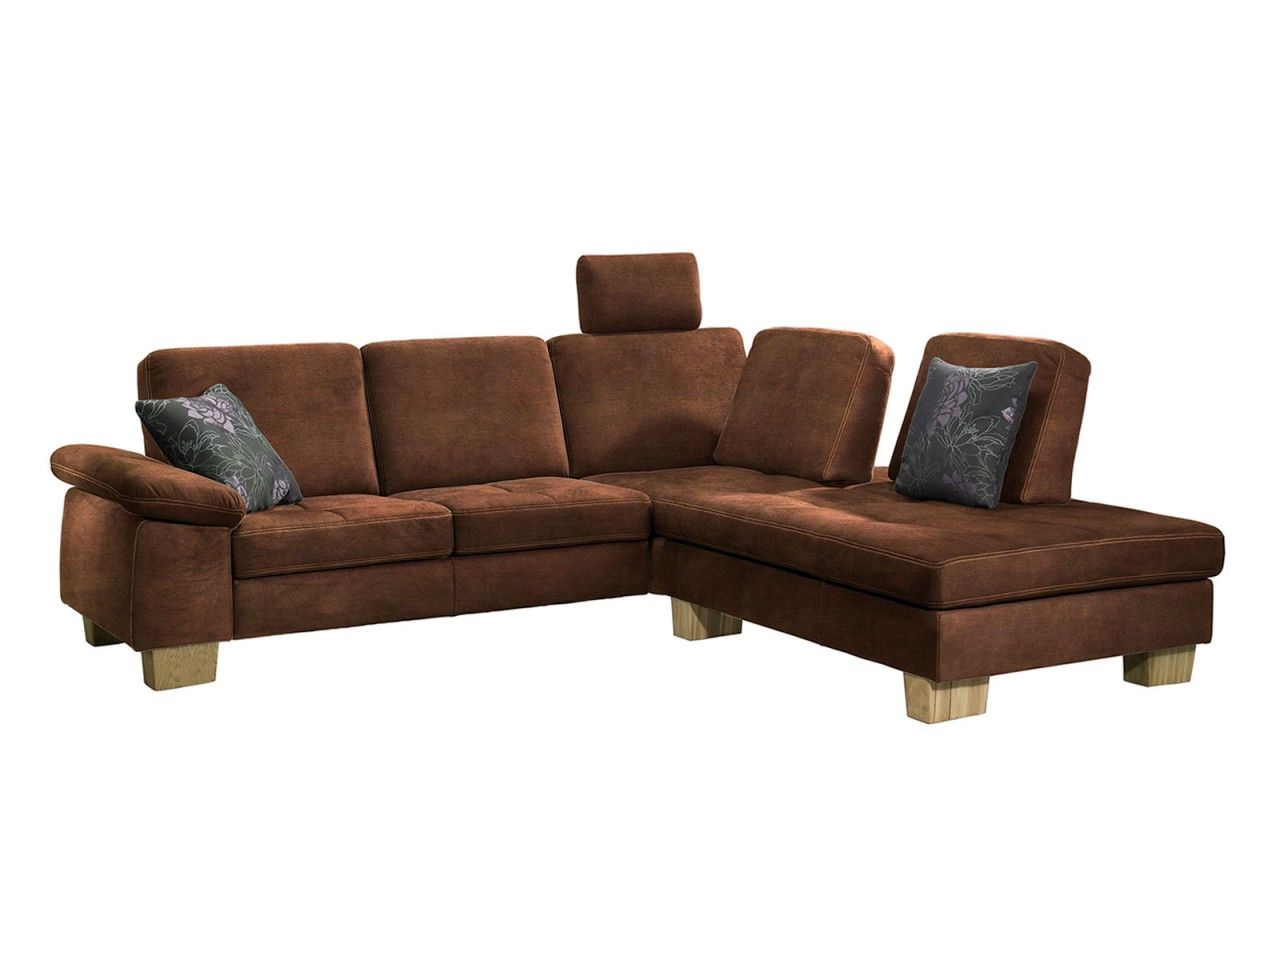 Halifax Inspirational Sofa Bed Polstergarnitur Vista Armteil Links Links 273 X Rechts 223 Cm